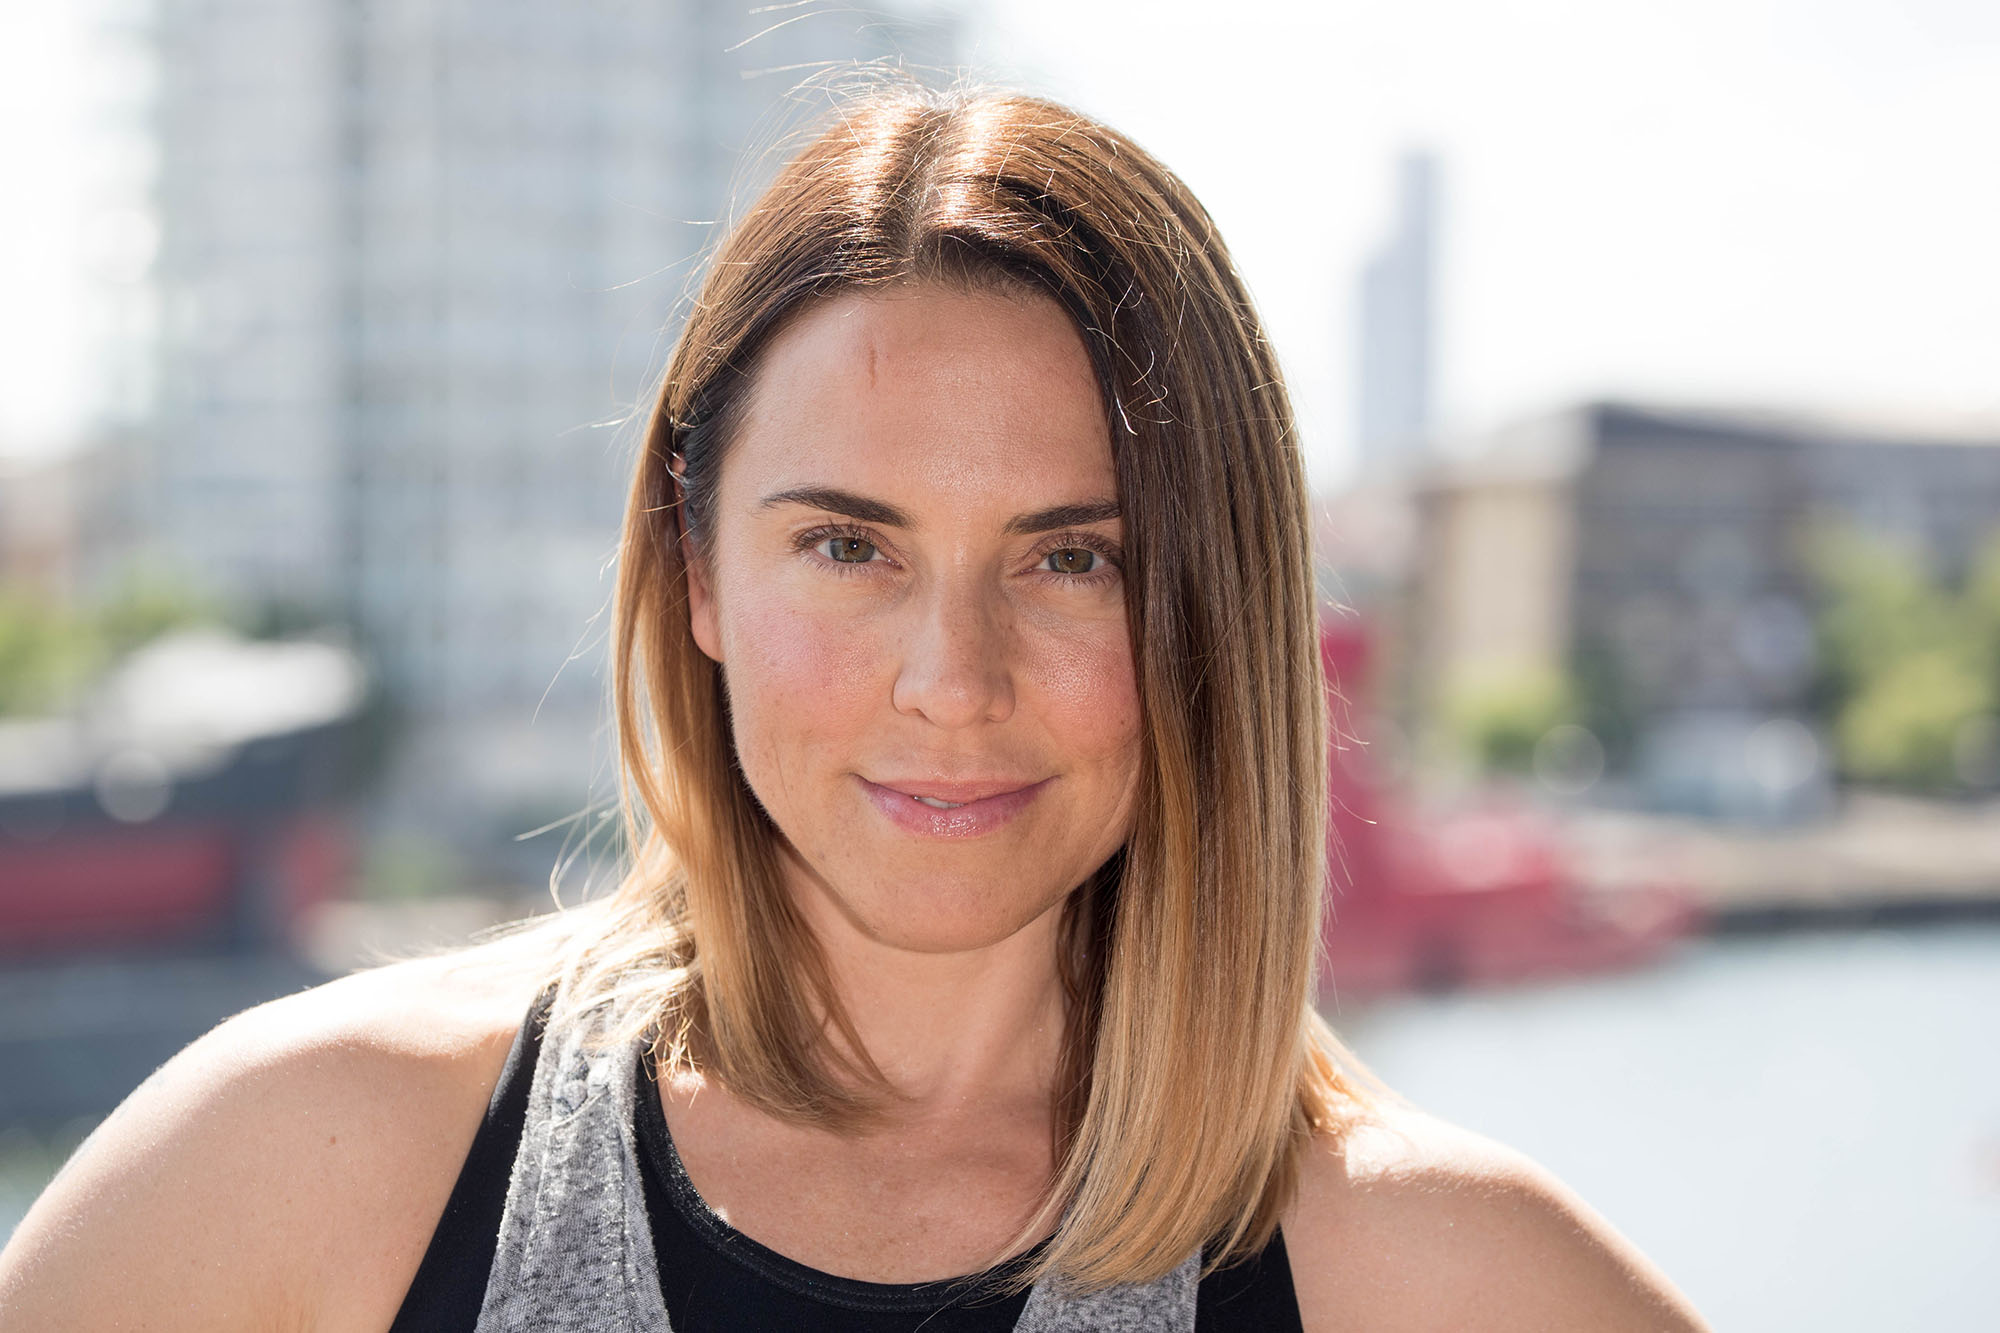 Mel C attends for a Photocall before The London Triathlon at ExCel on August 6, 2016 in London, England. (Photo by Luca Teuchmann/Getty Images)